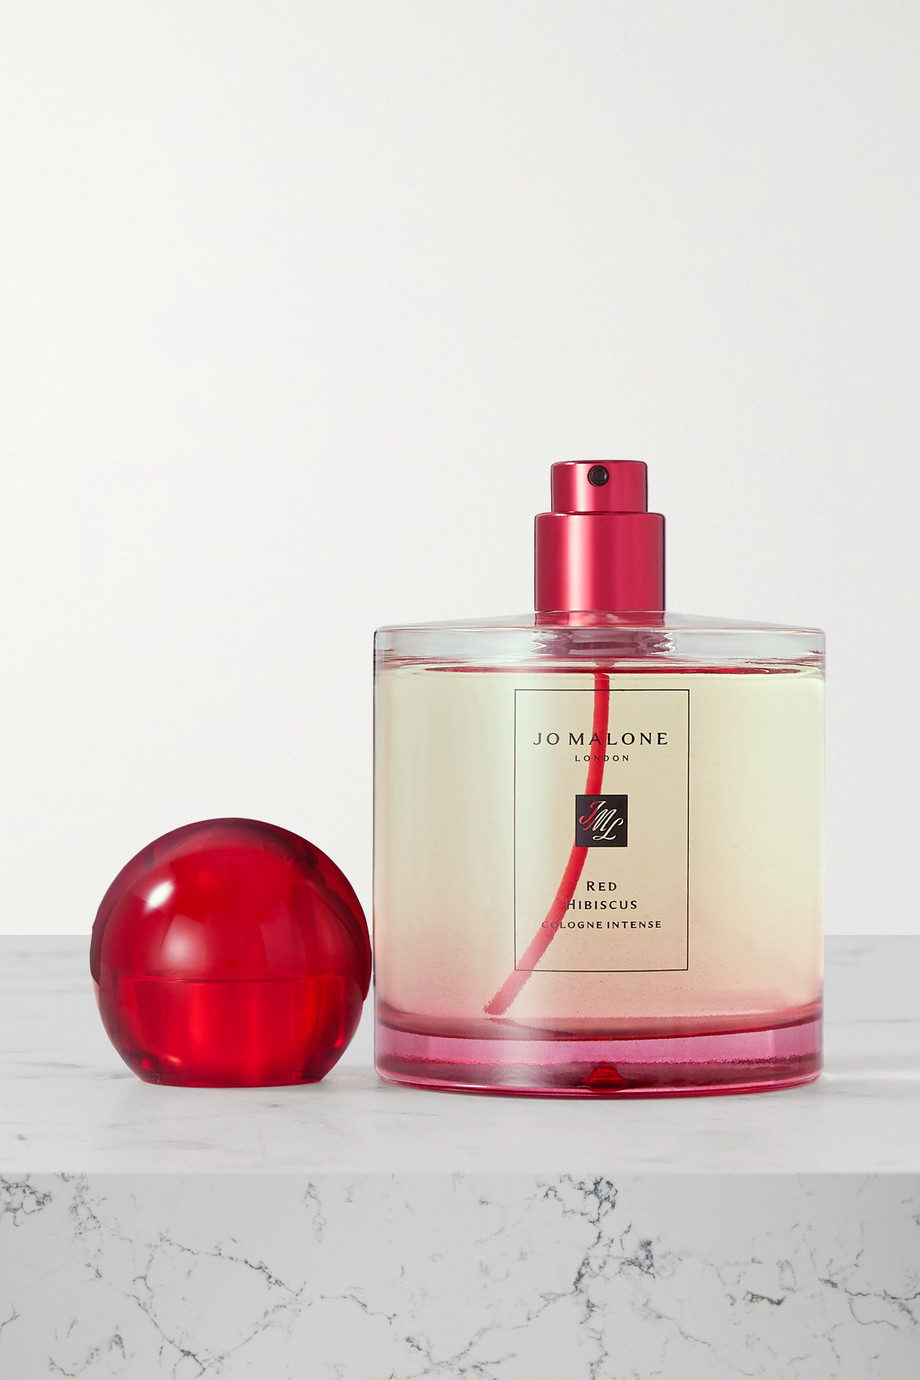 Jo Malone London Cologne Intense – Red Hibiscus, 100 ml – Eau de Cologne